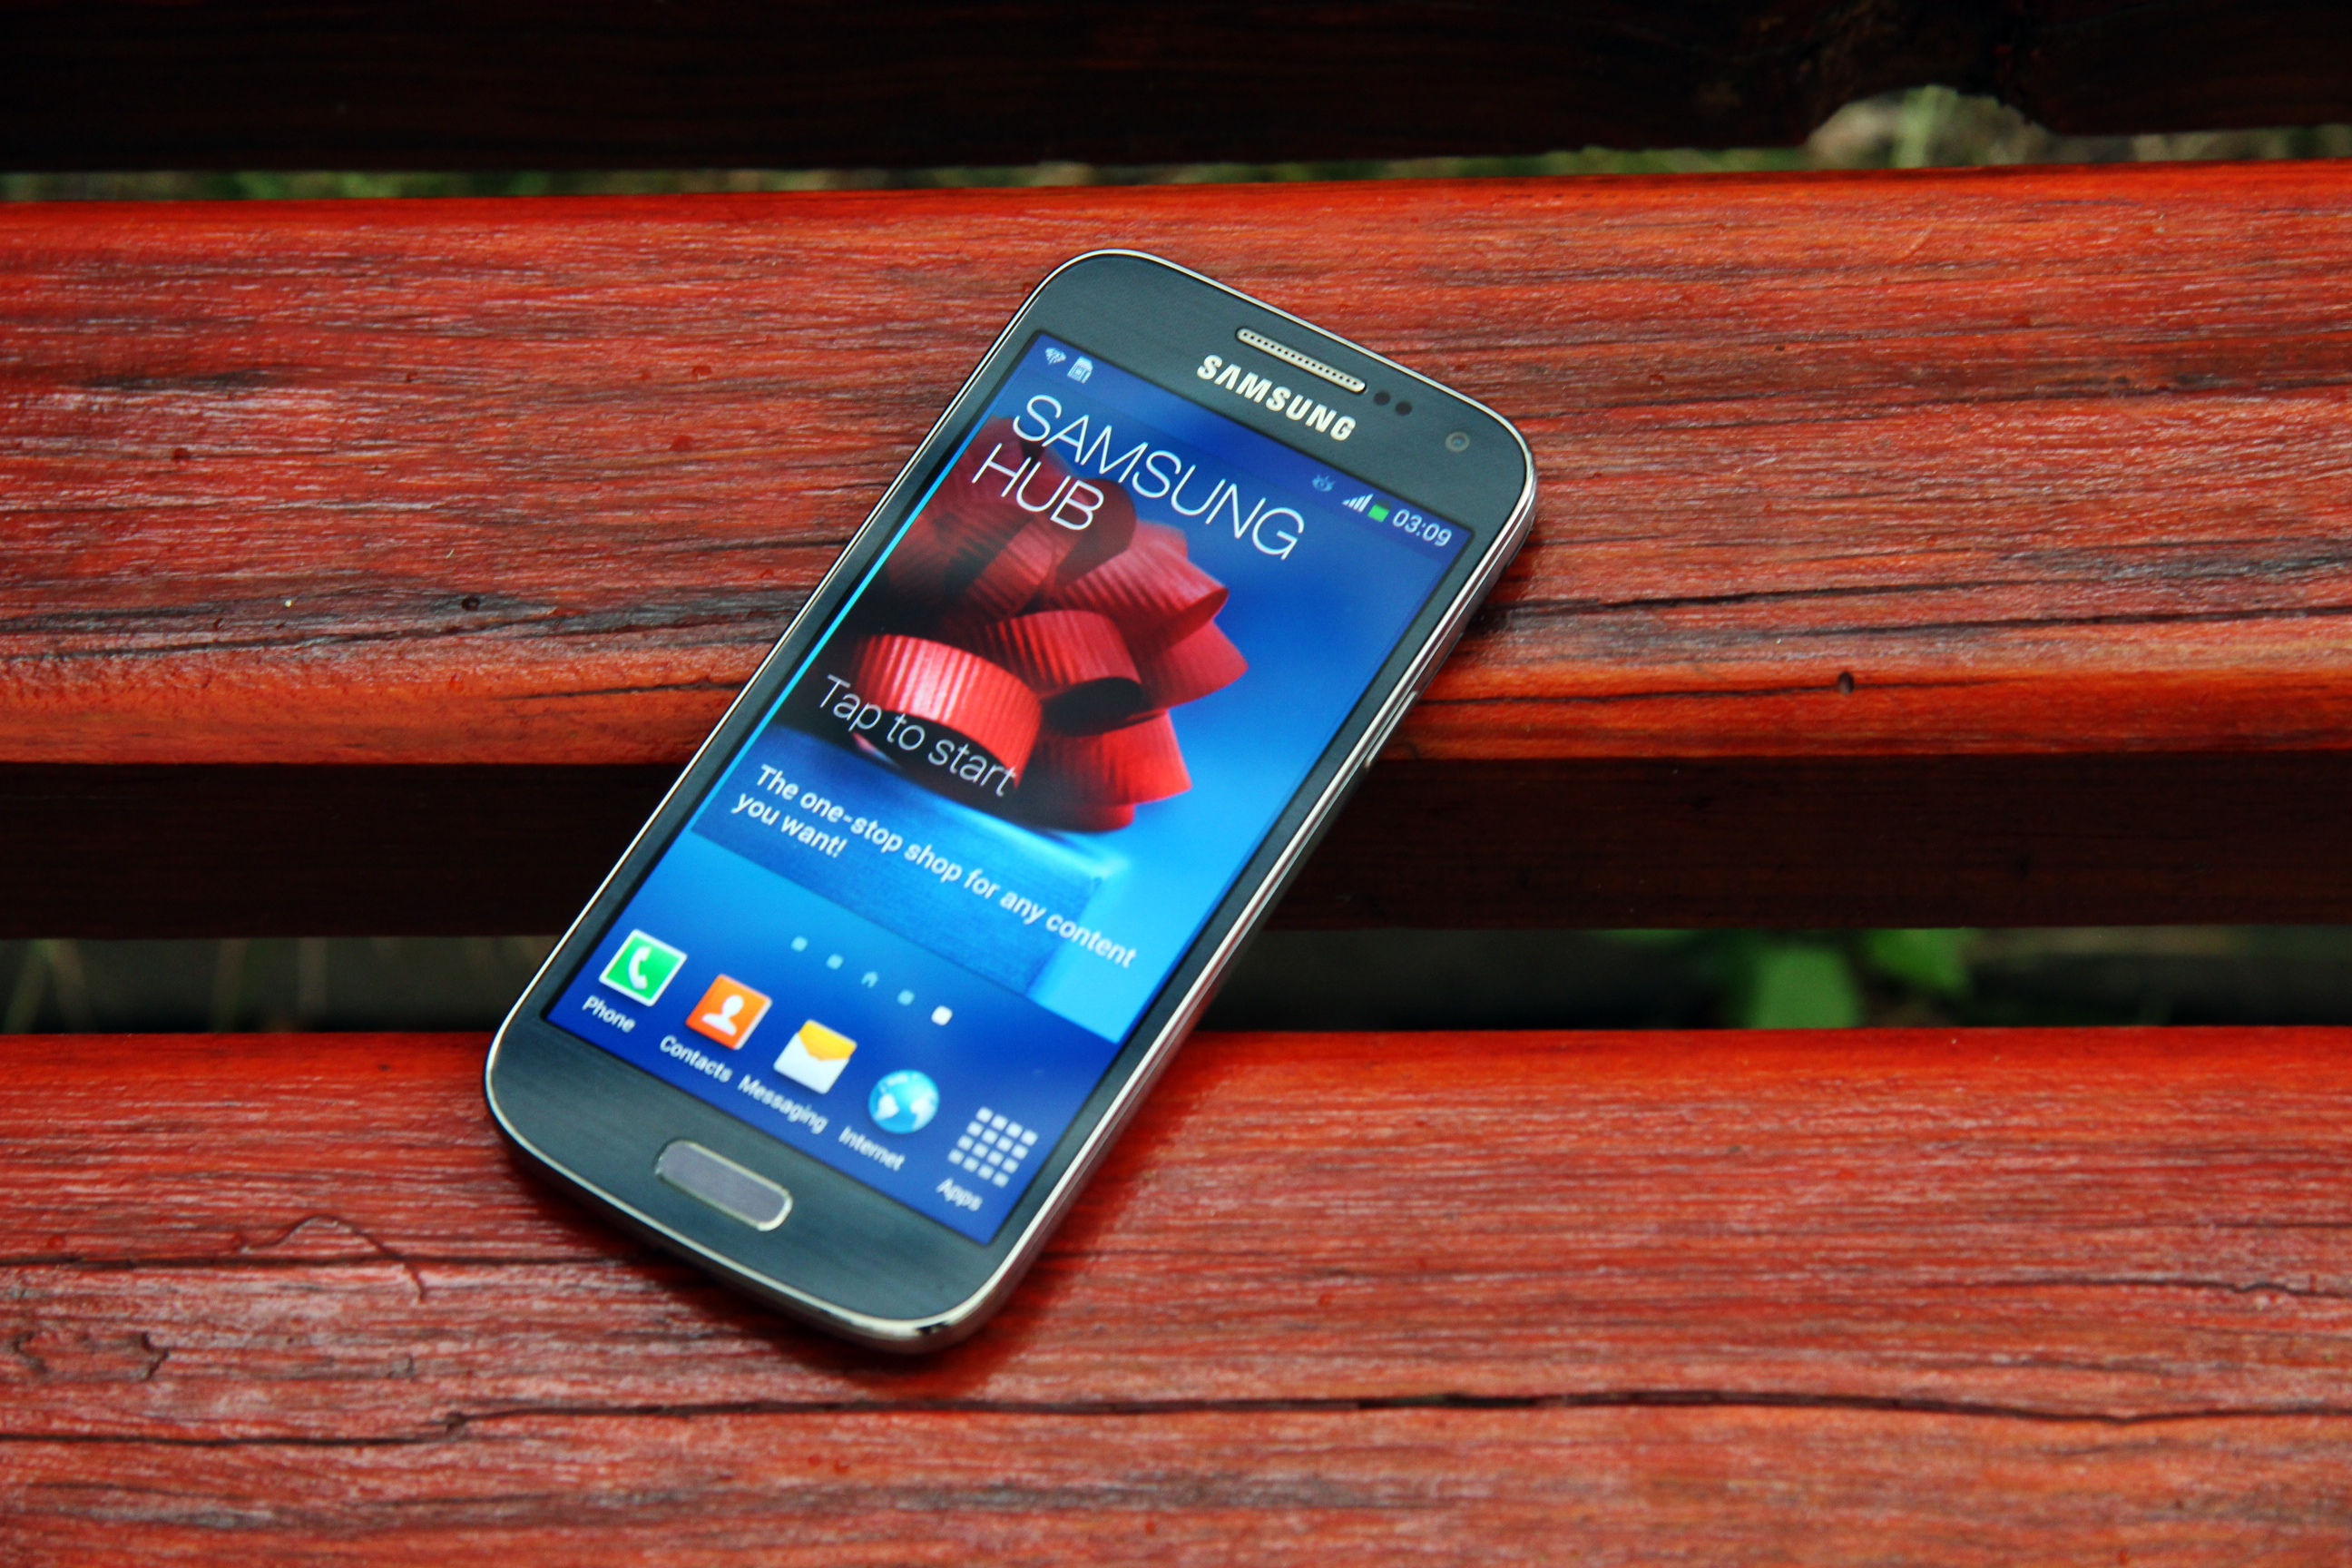 Wallpaper Samsung Galaxy S4 on the bench